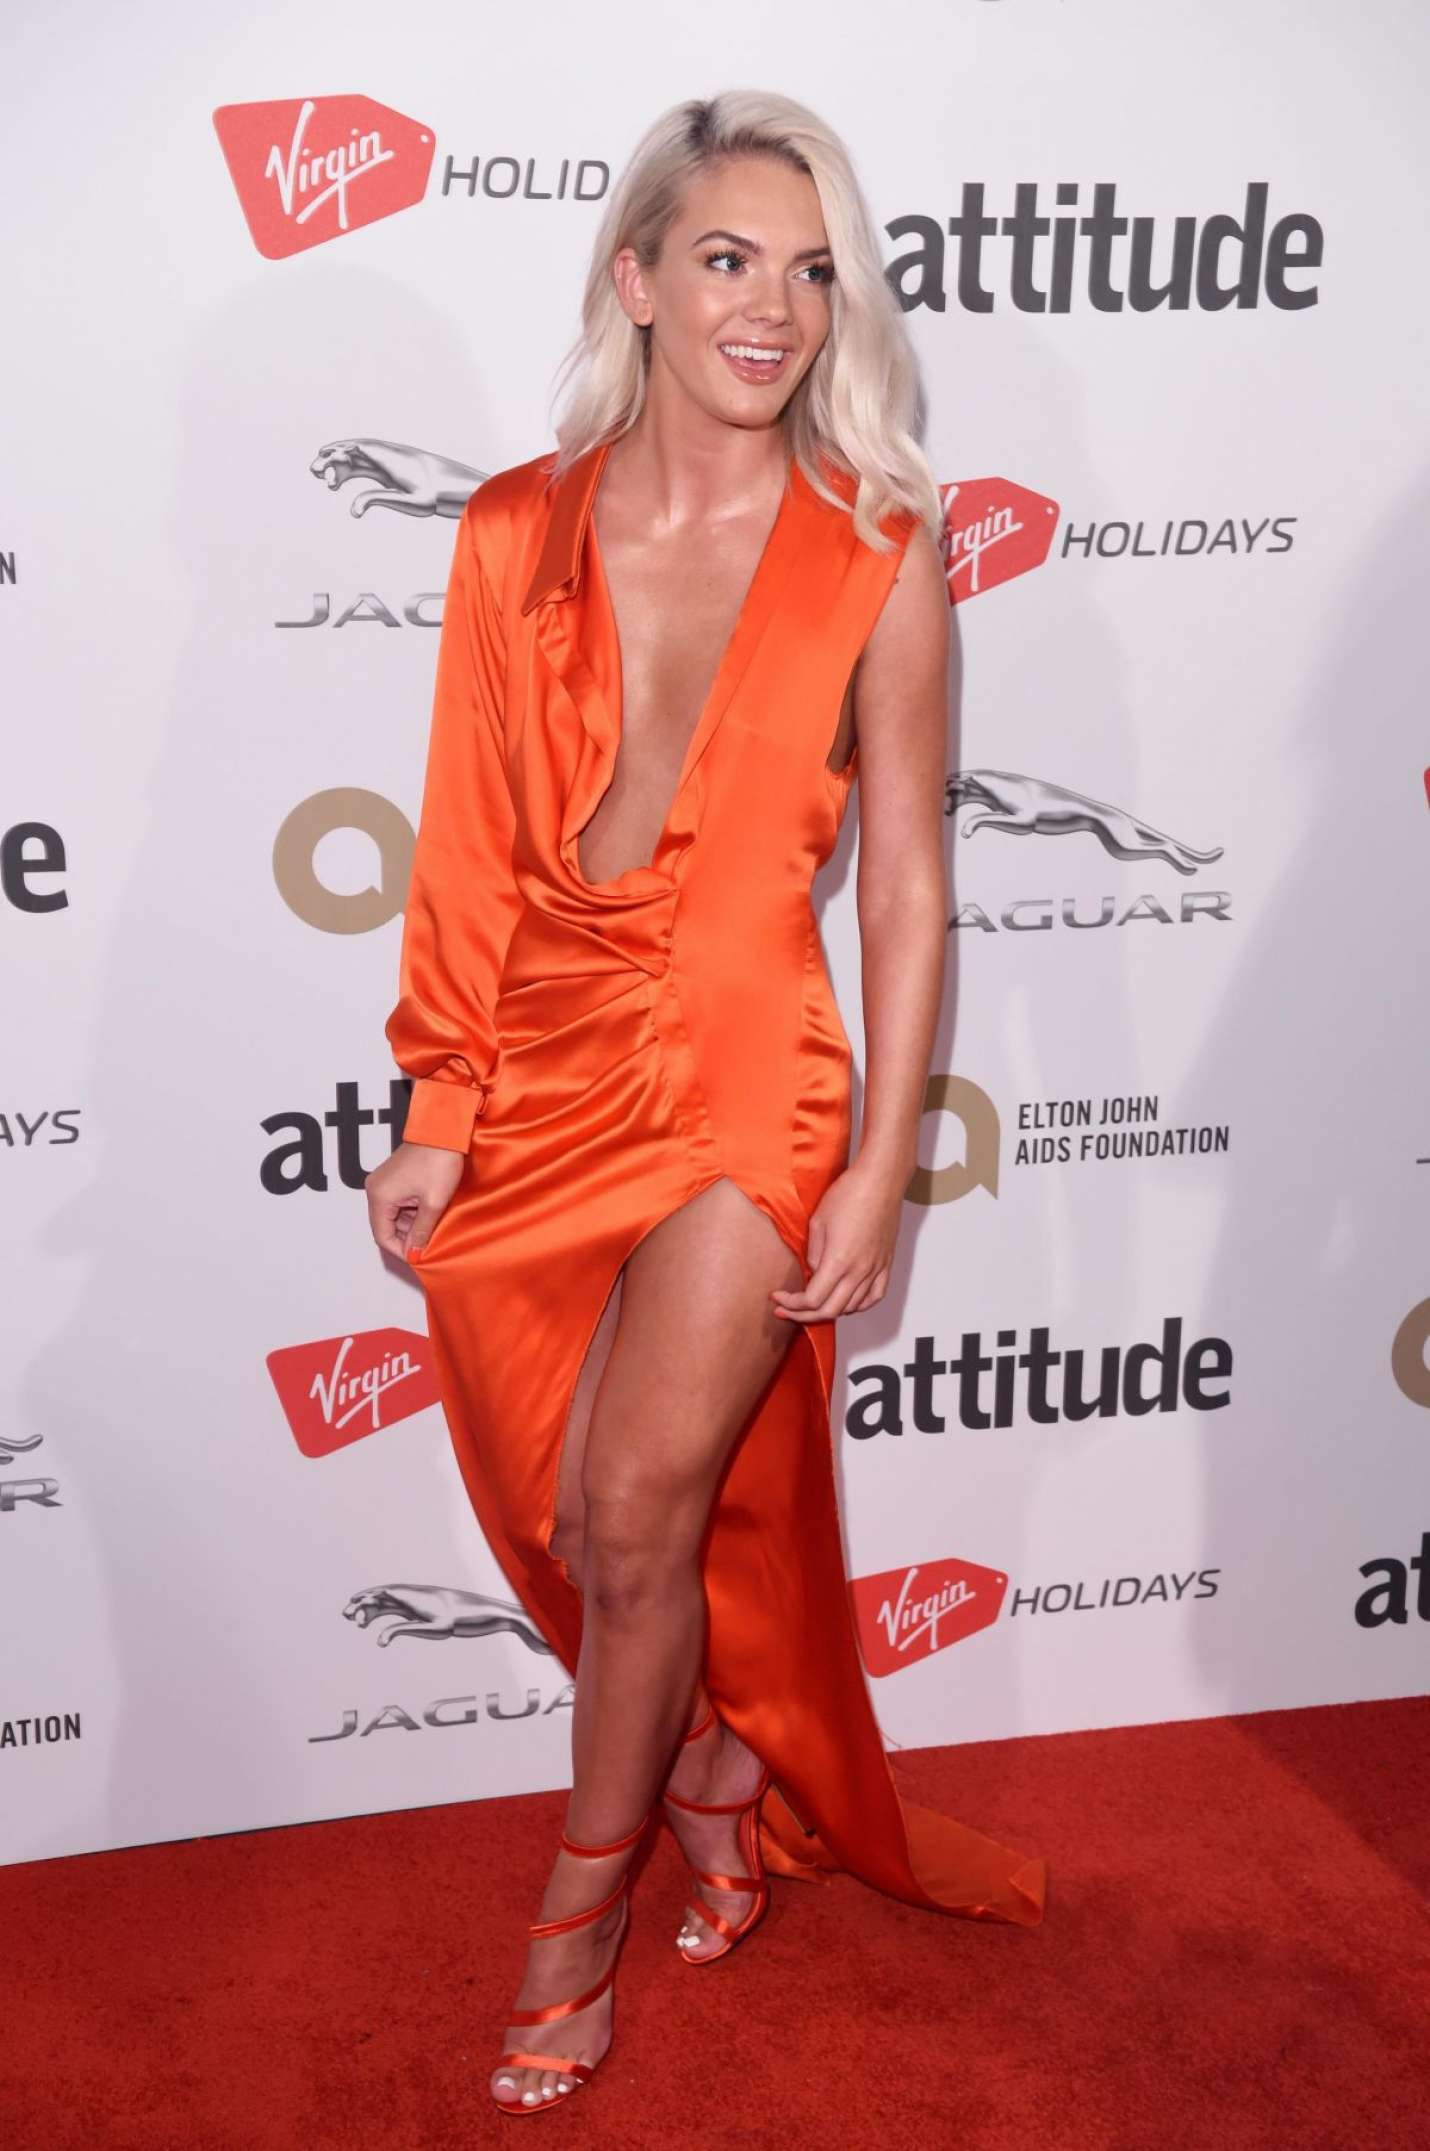 Louisa Johnson Attitude Magazine Pride Awards 2017 In